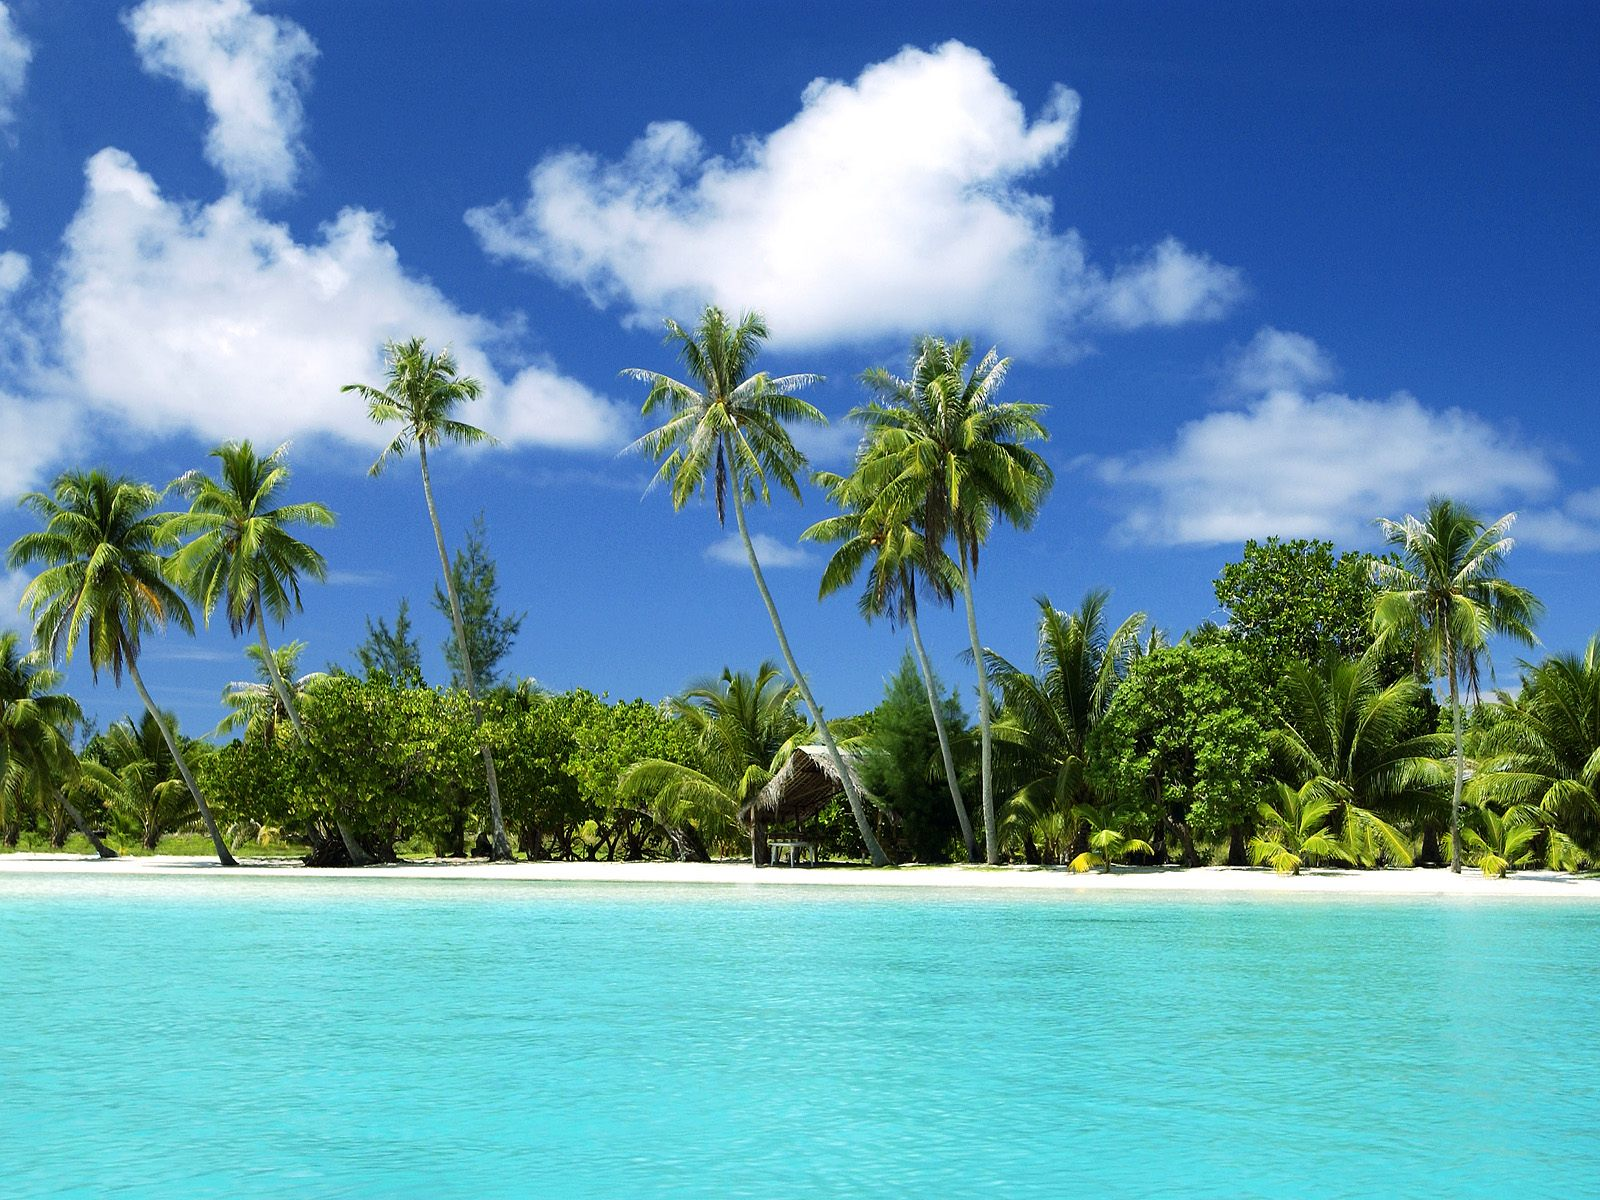 download tropical beach scenes wallpaper which is under the beach 1600x1200